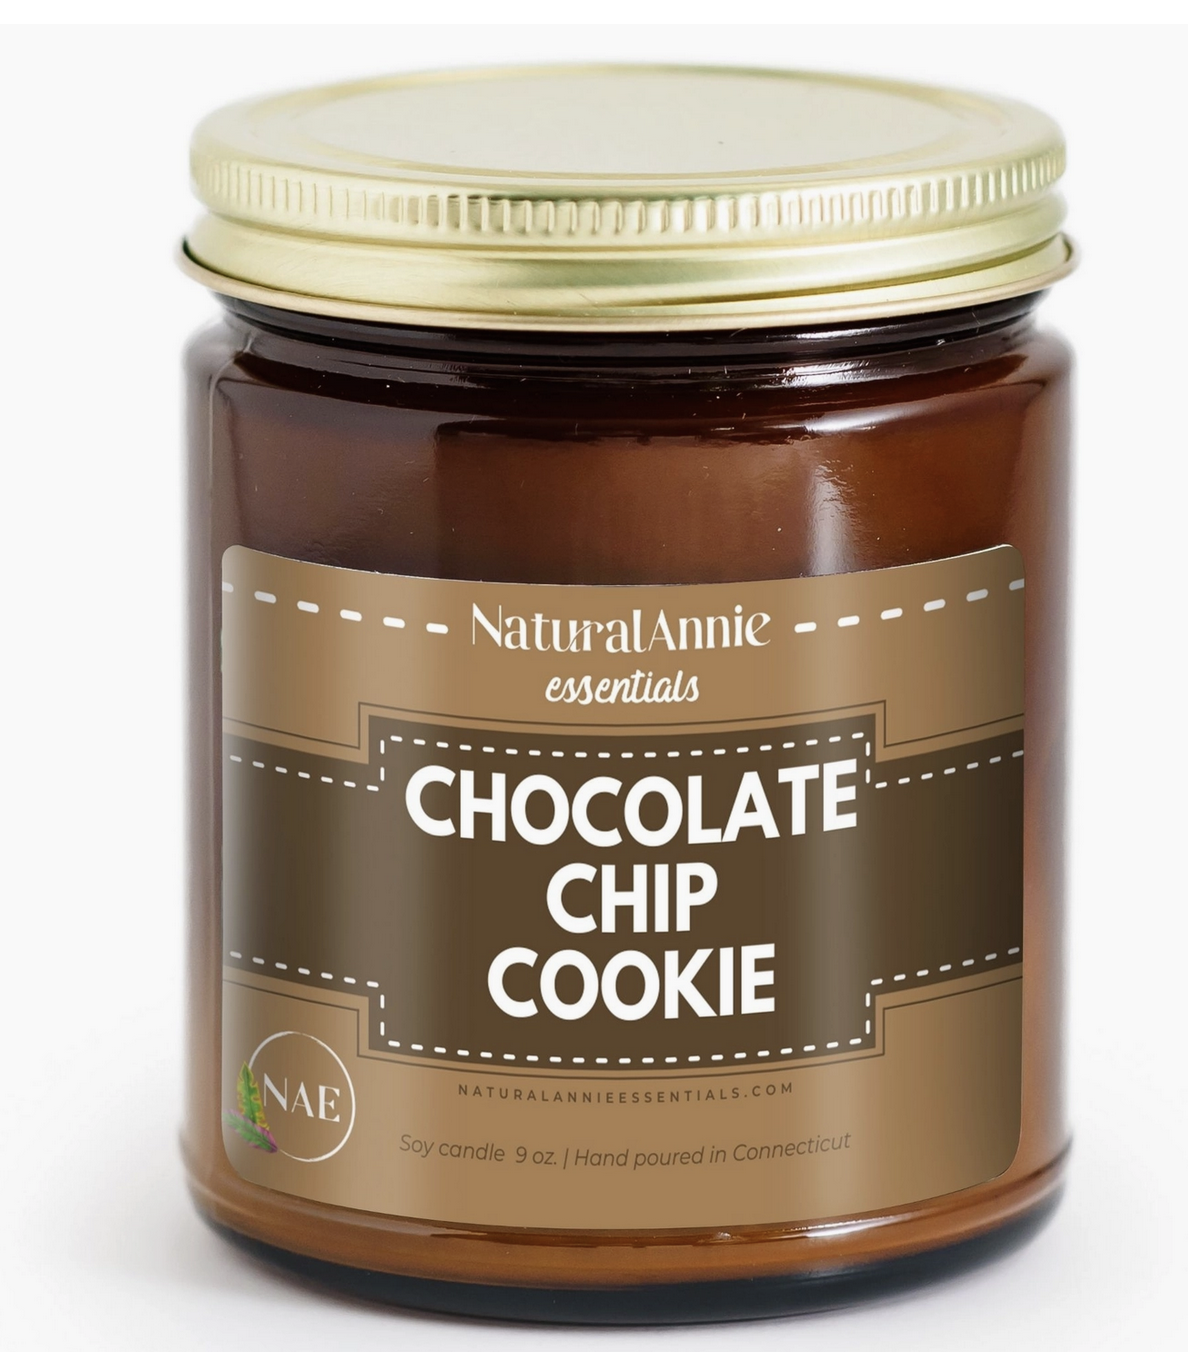 NaturalAnnie Essentials CHOCOLATE CHIP COOKIES Scented Soy Candle 9oz